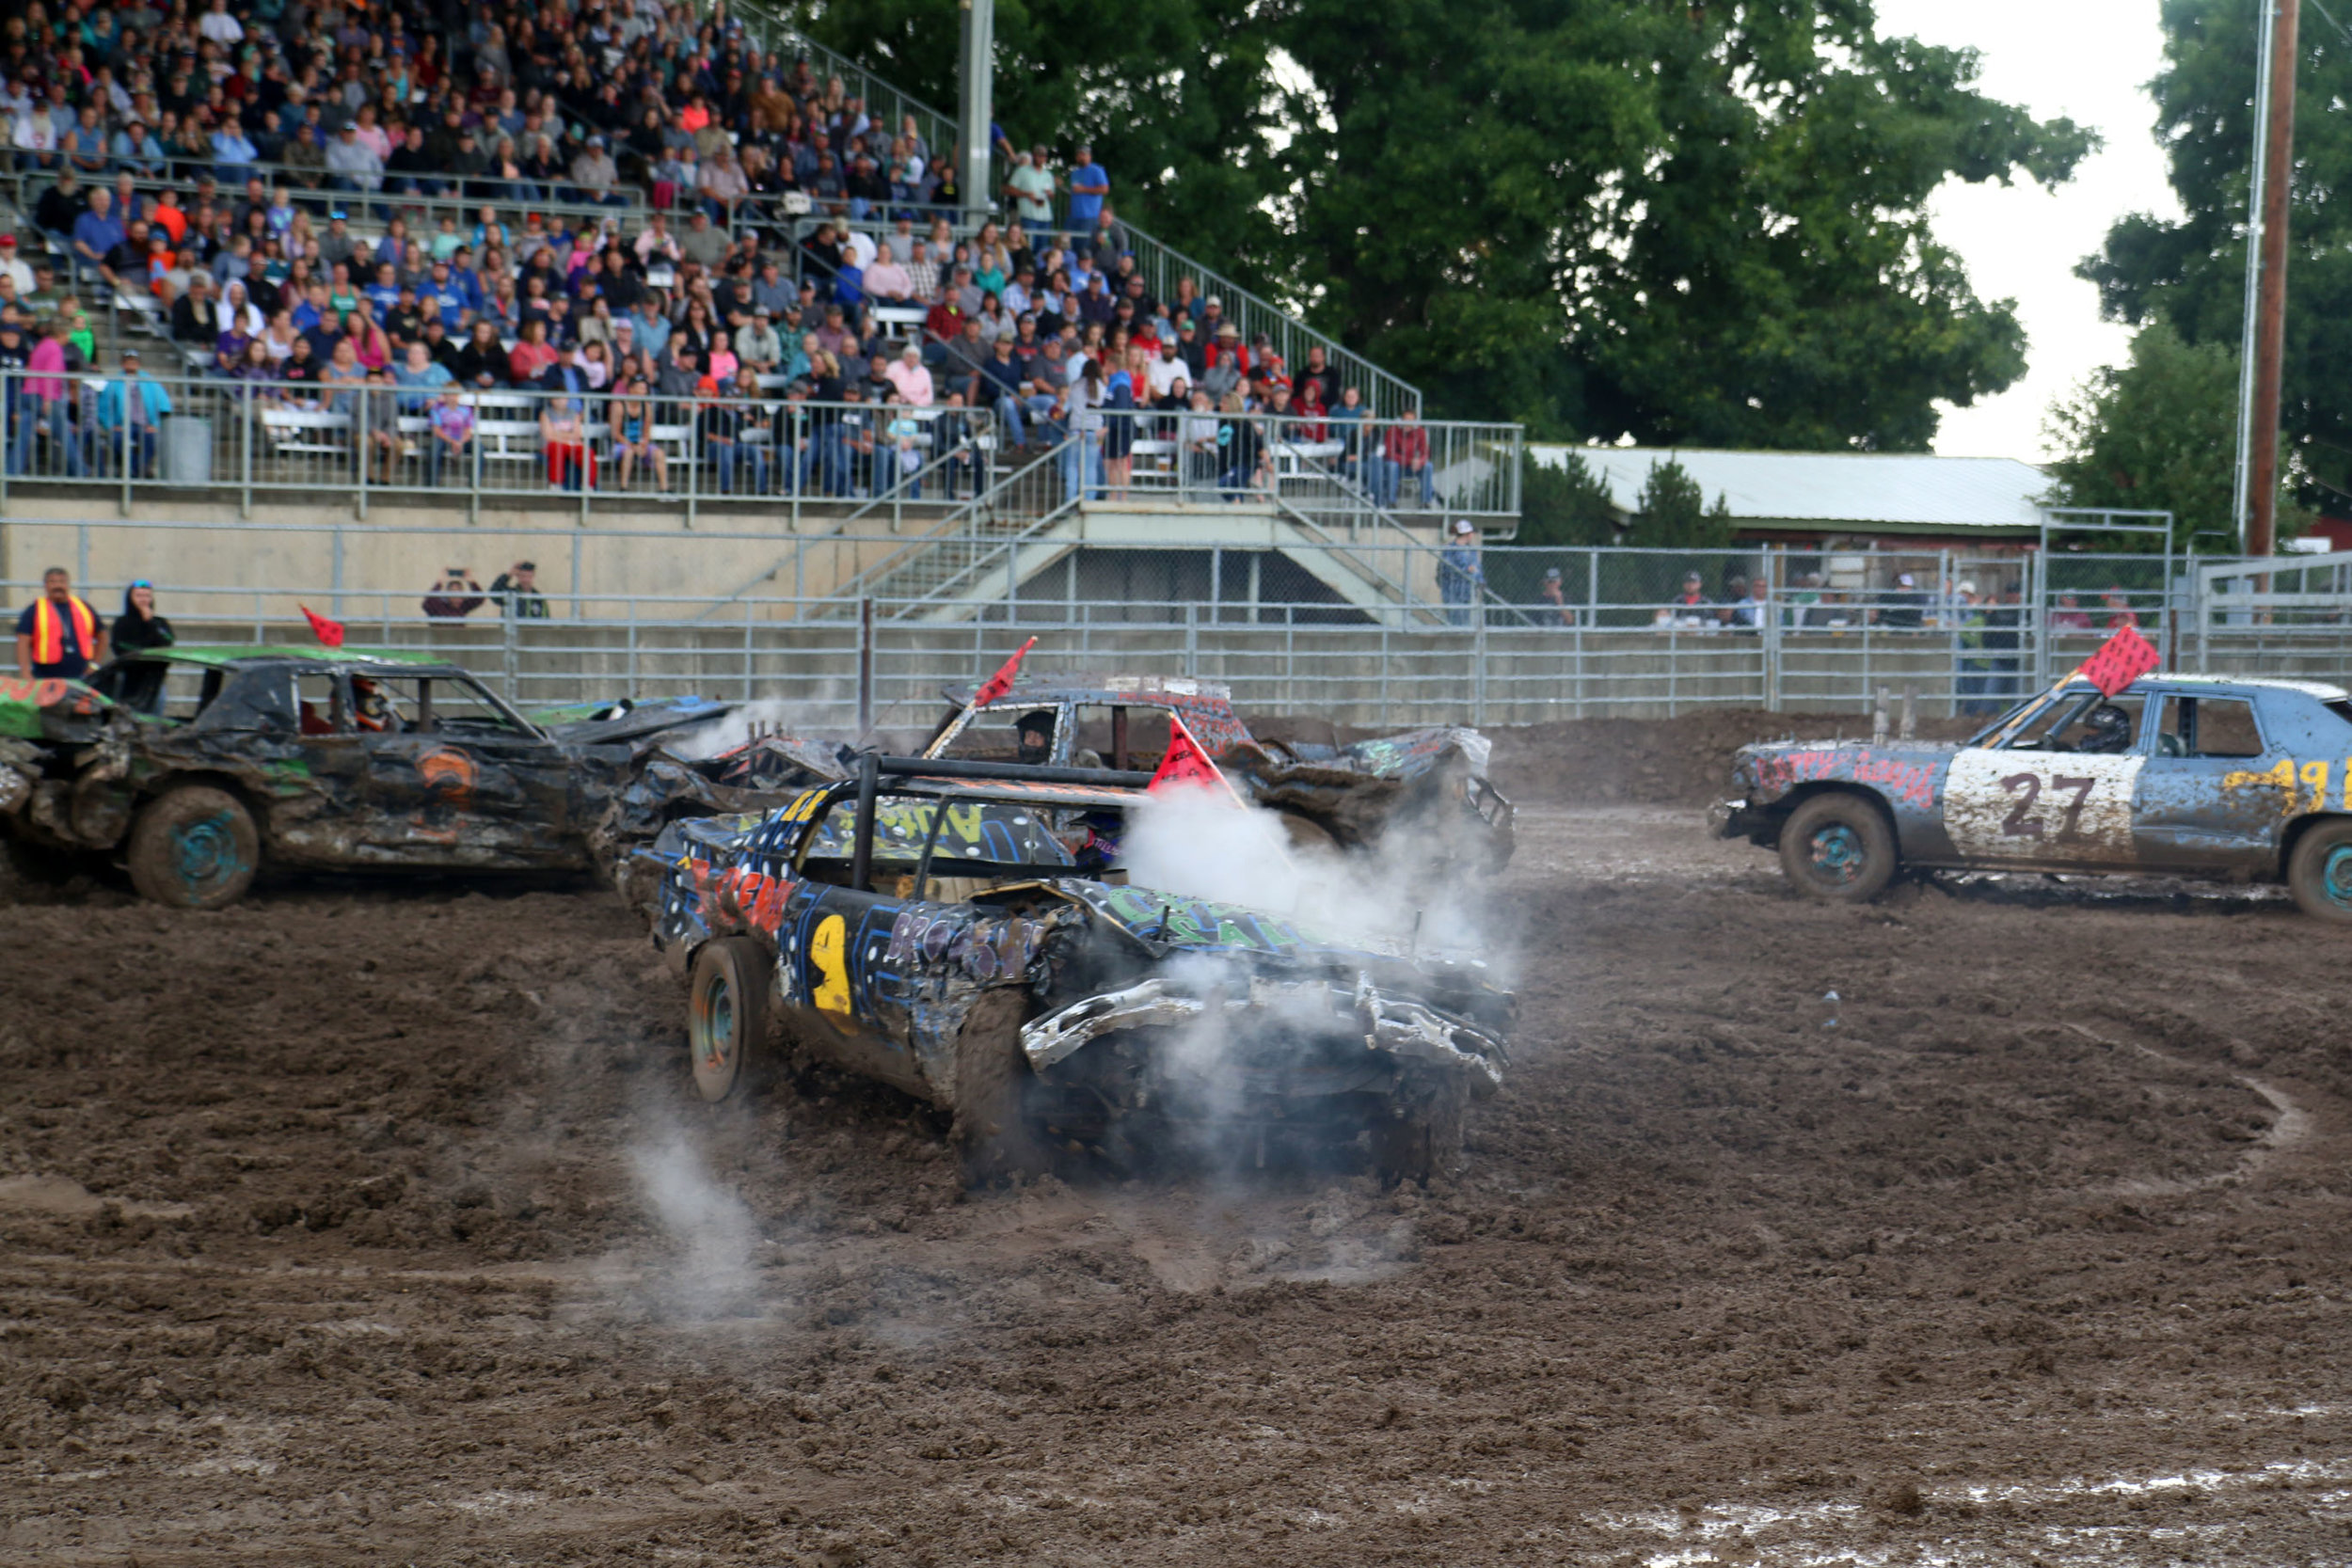 Demolition Derby at the Central Montana Fair in Lewistown, Montana